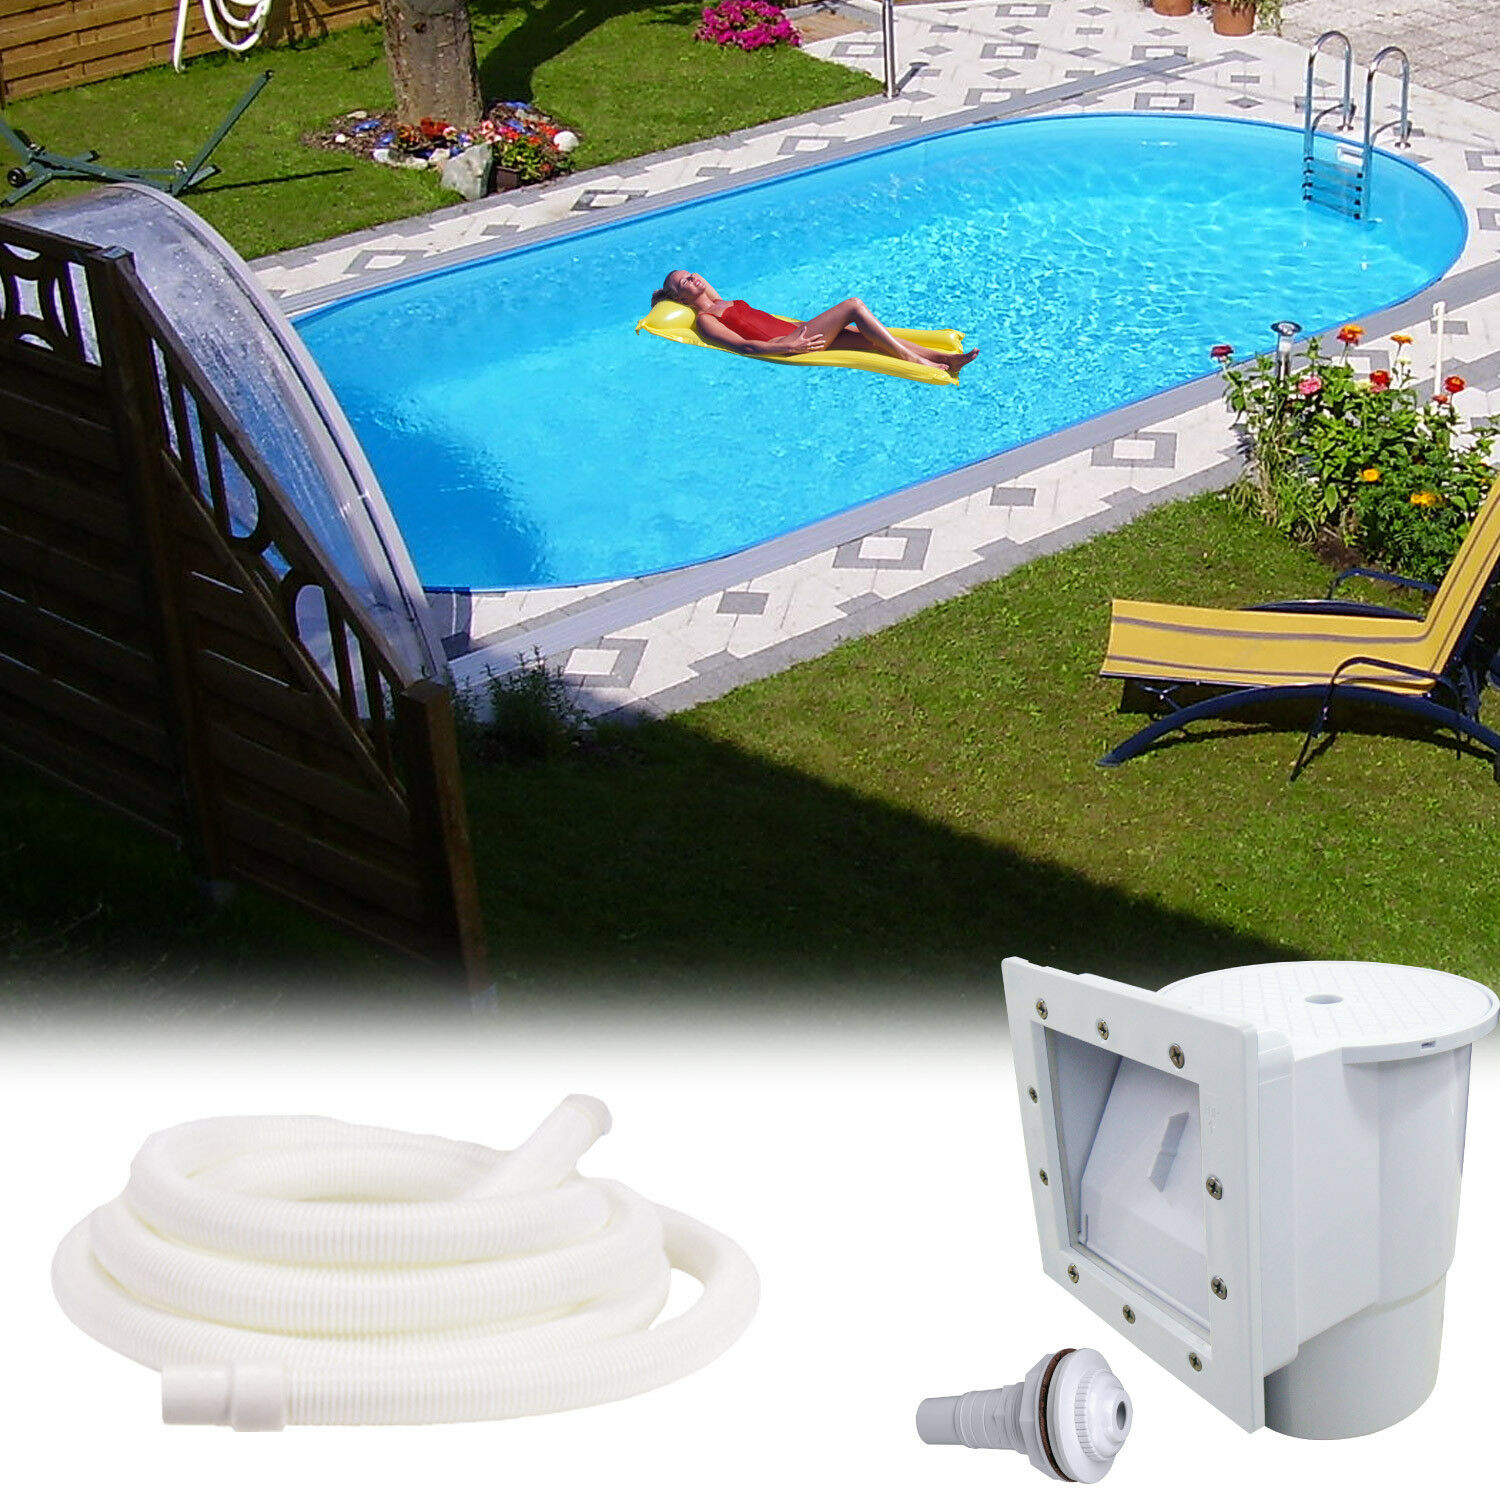 Exceptional Stahlwandpool 800x400x150 Schwimmbecken Swimming Pool Schwimmbad Metal  Stahlwand